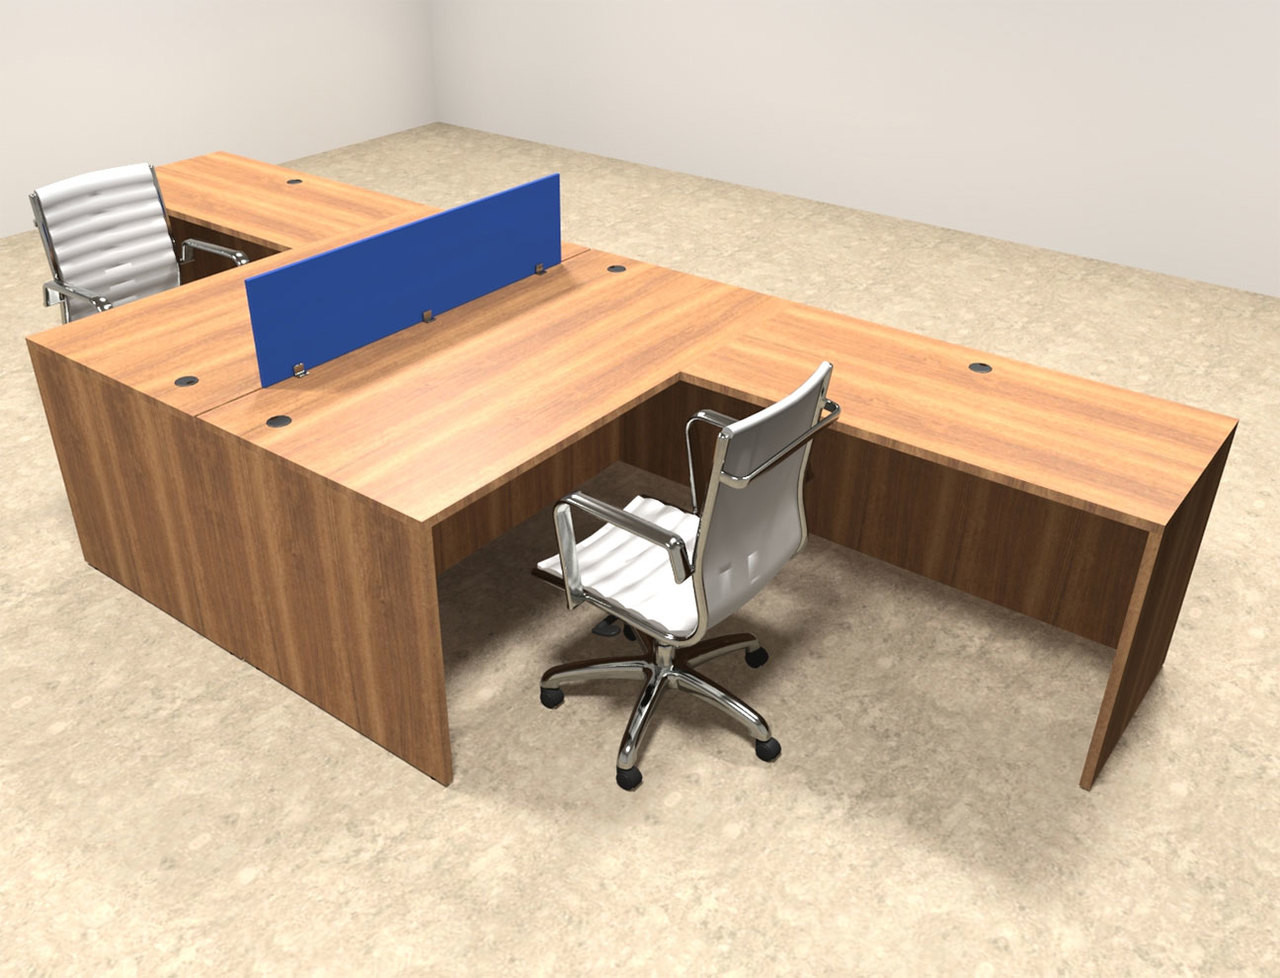 Two Person Blue Divider Office Workstation Desk Set, #OT-SUL-FPB25